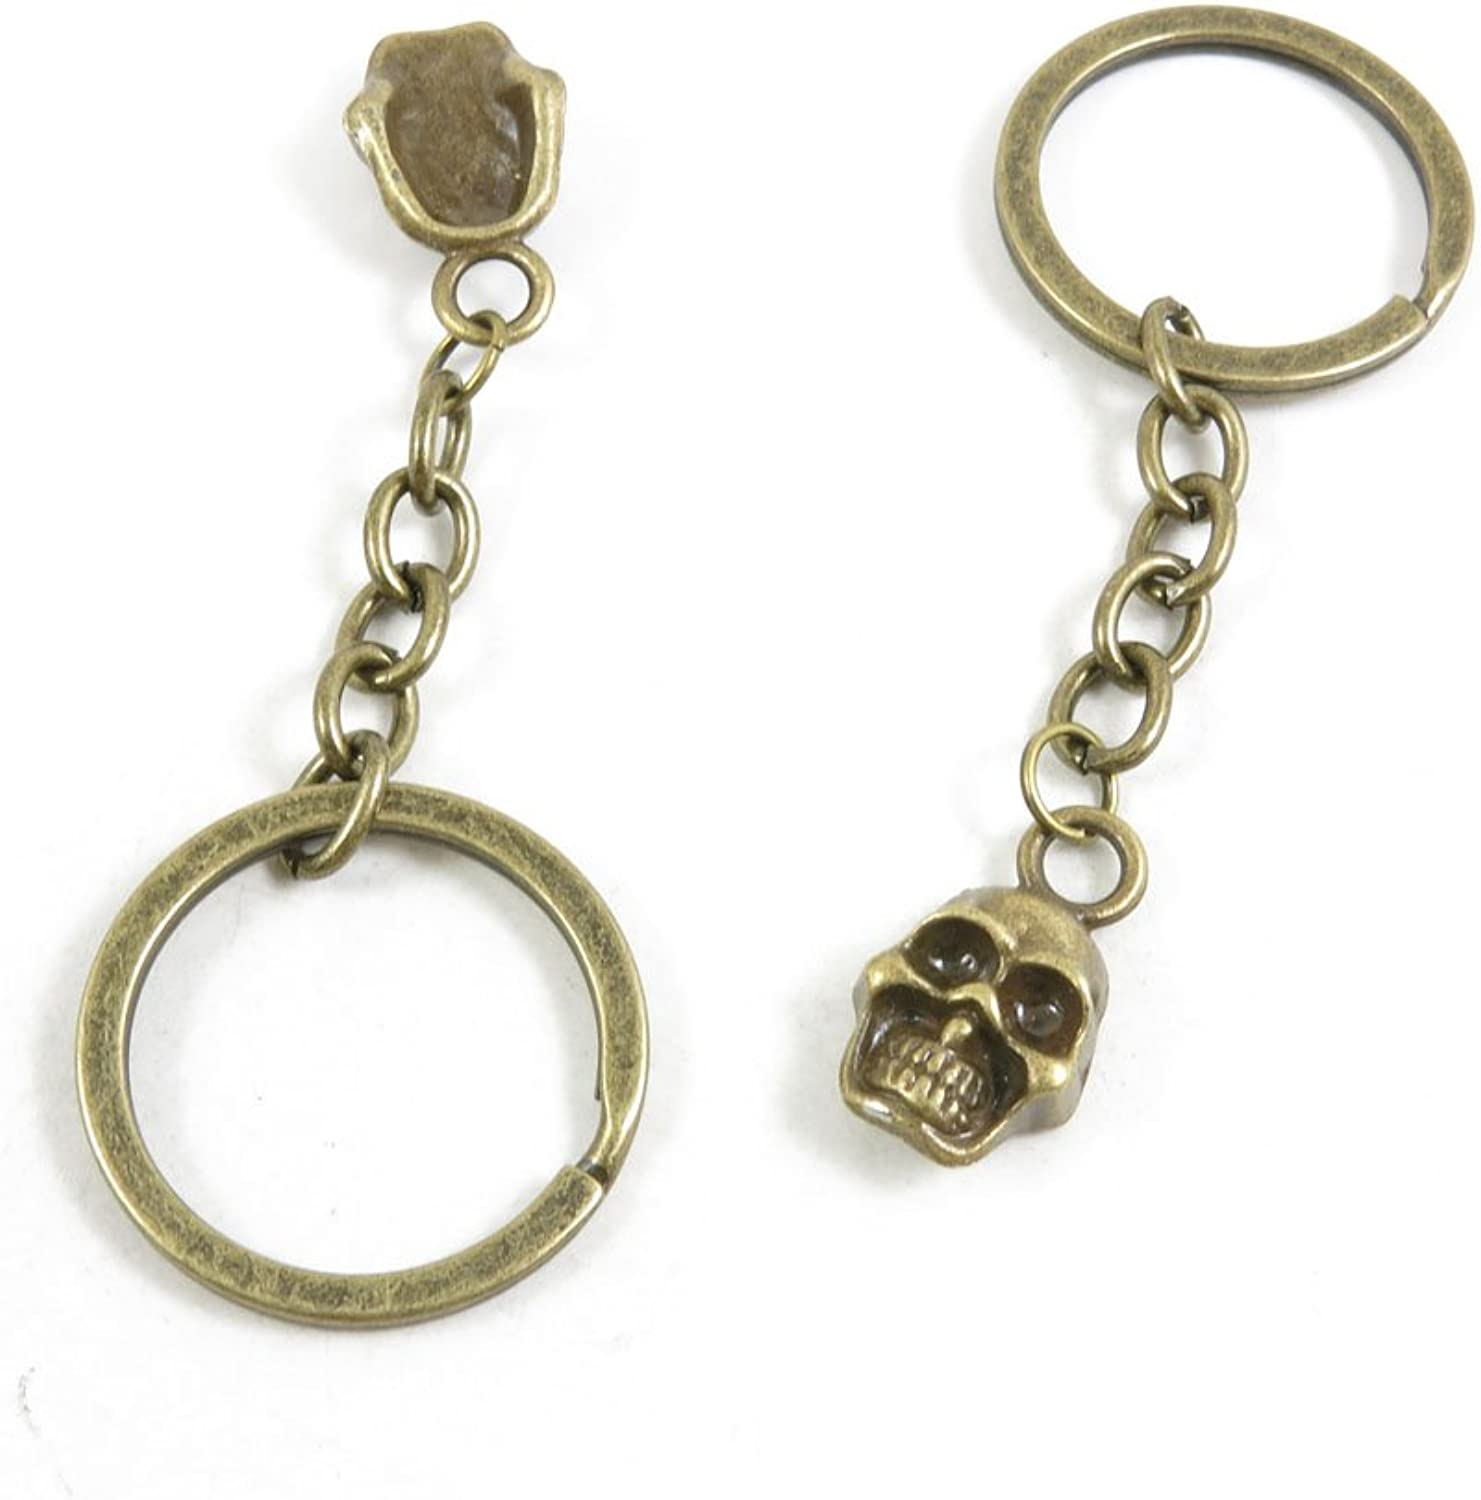 190 Pieces Fashion Jewelry Keyring Keychain Door Car Key Tag Ring Chain Supplier Supply Wholesale Bulk Lots T7QK9 Skull